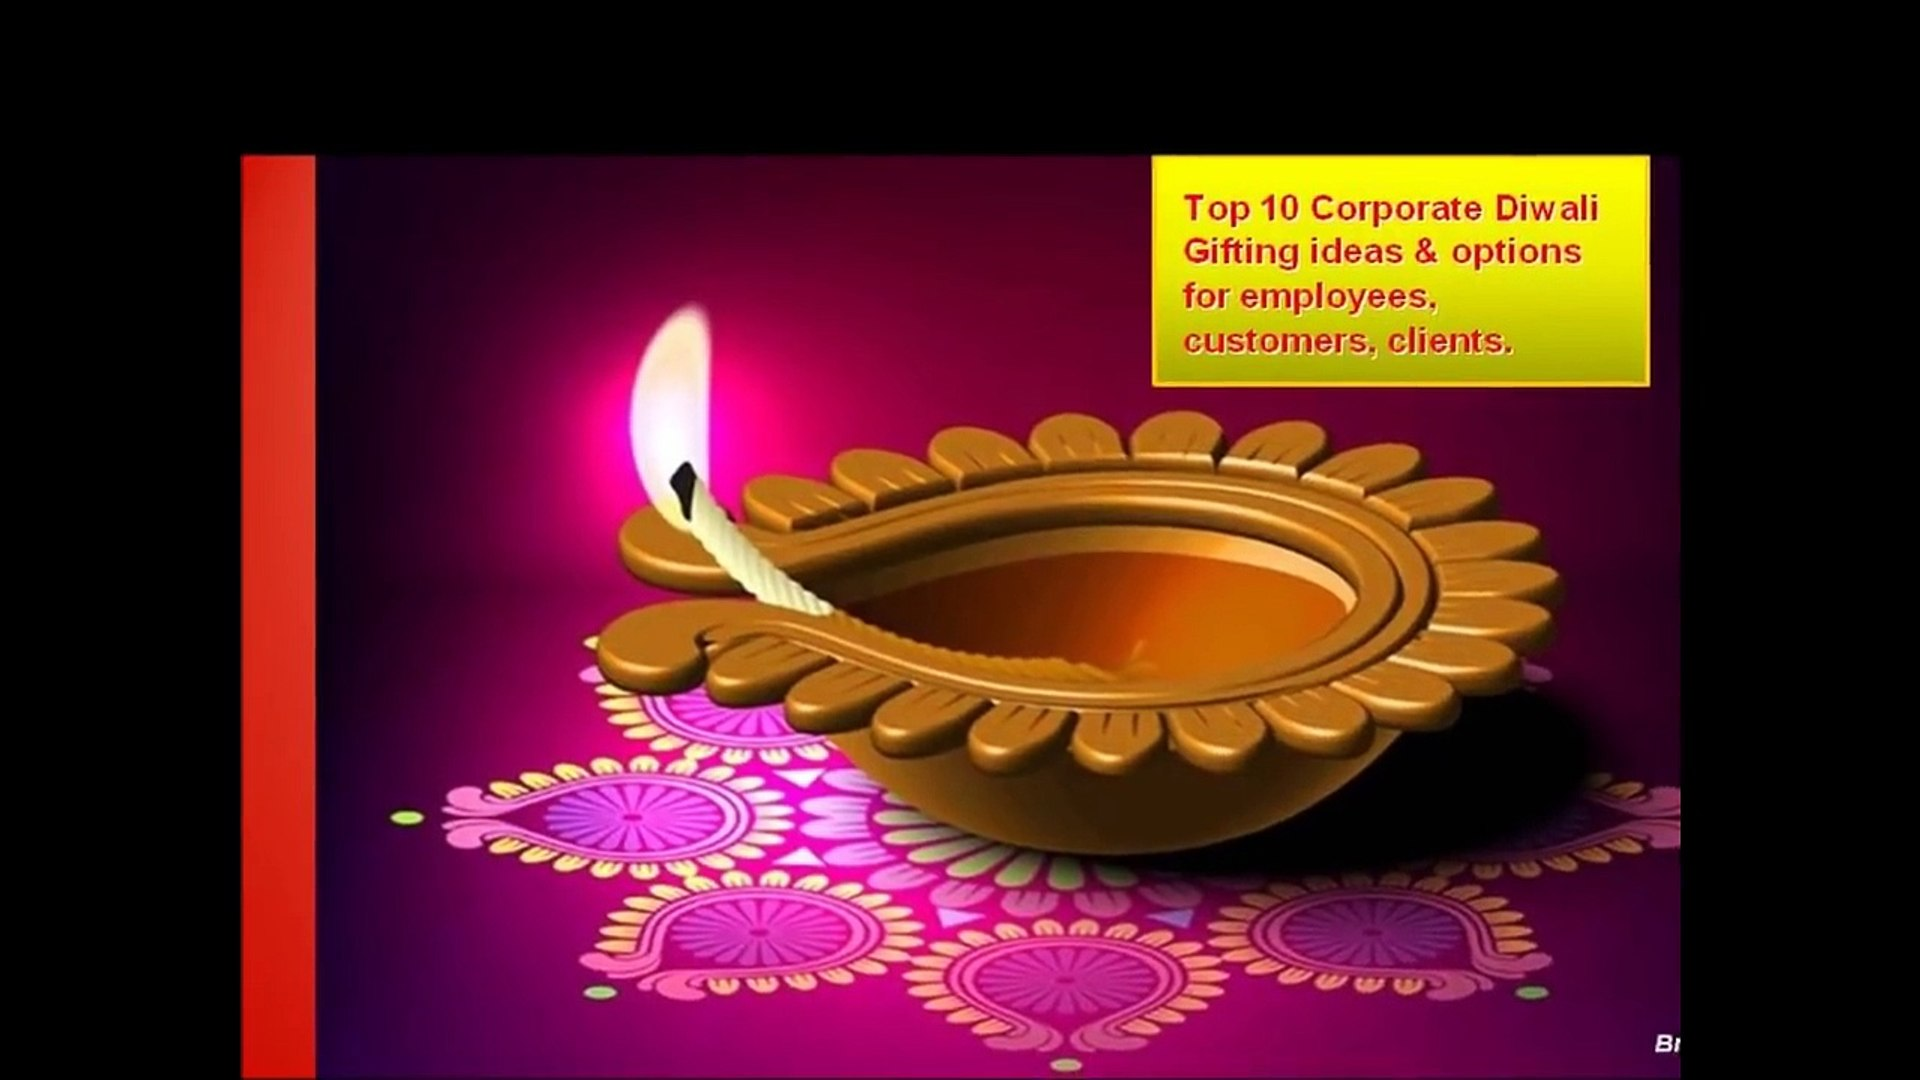 Top 10 Best Corporate Diwali Gifts Ideas For Employees And Customers Video Dailymotion